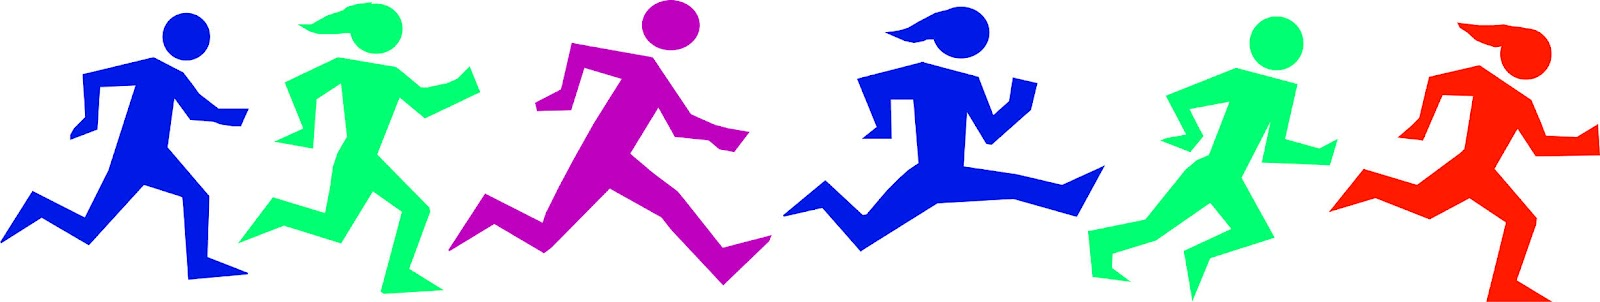 Image result for cross country clip art free running